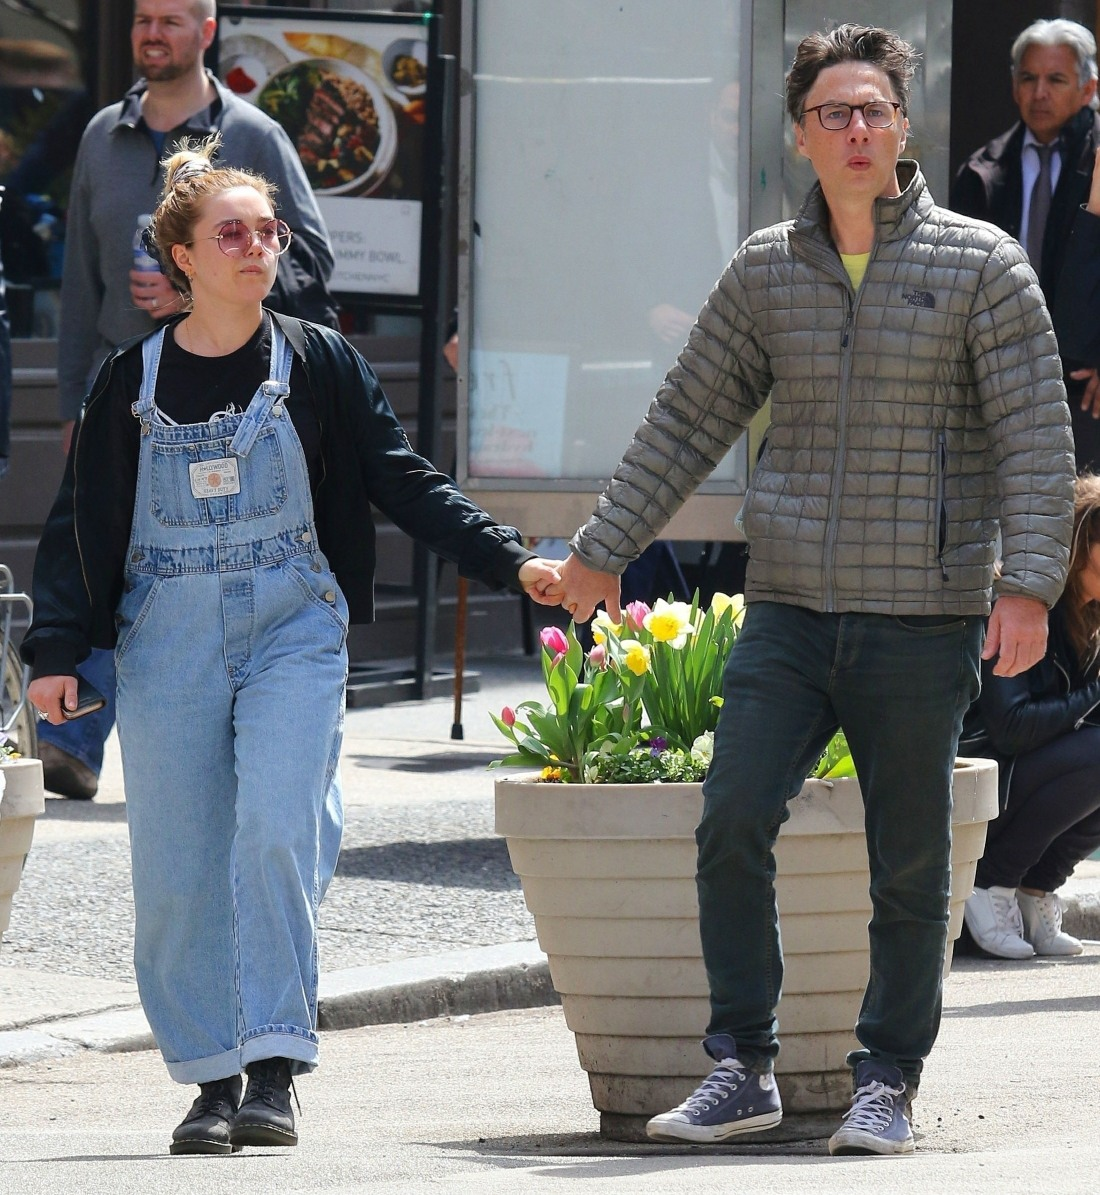 Zach Braff spotted hand-in-hand with Florence Pugh in NYC!